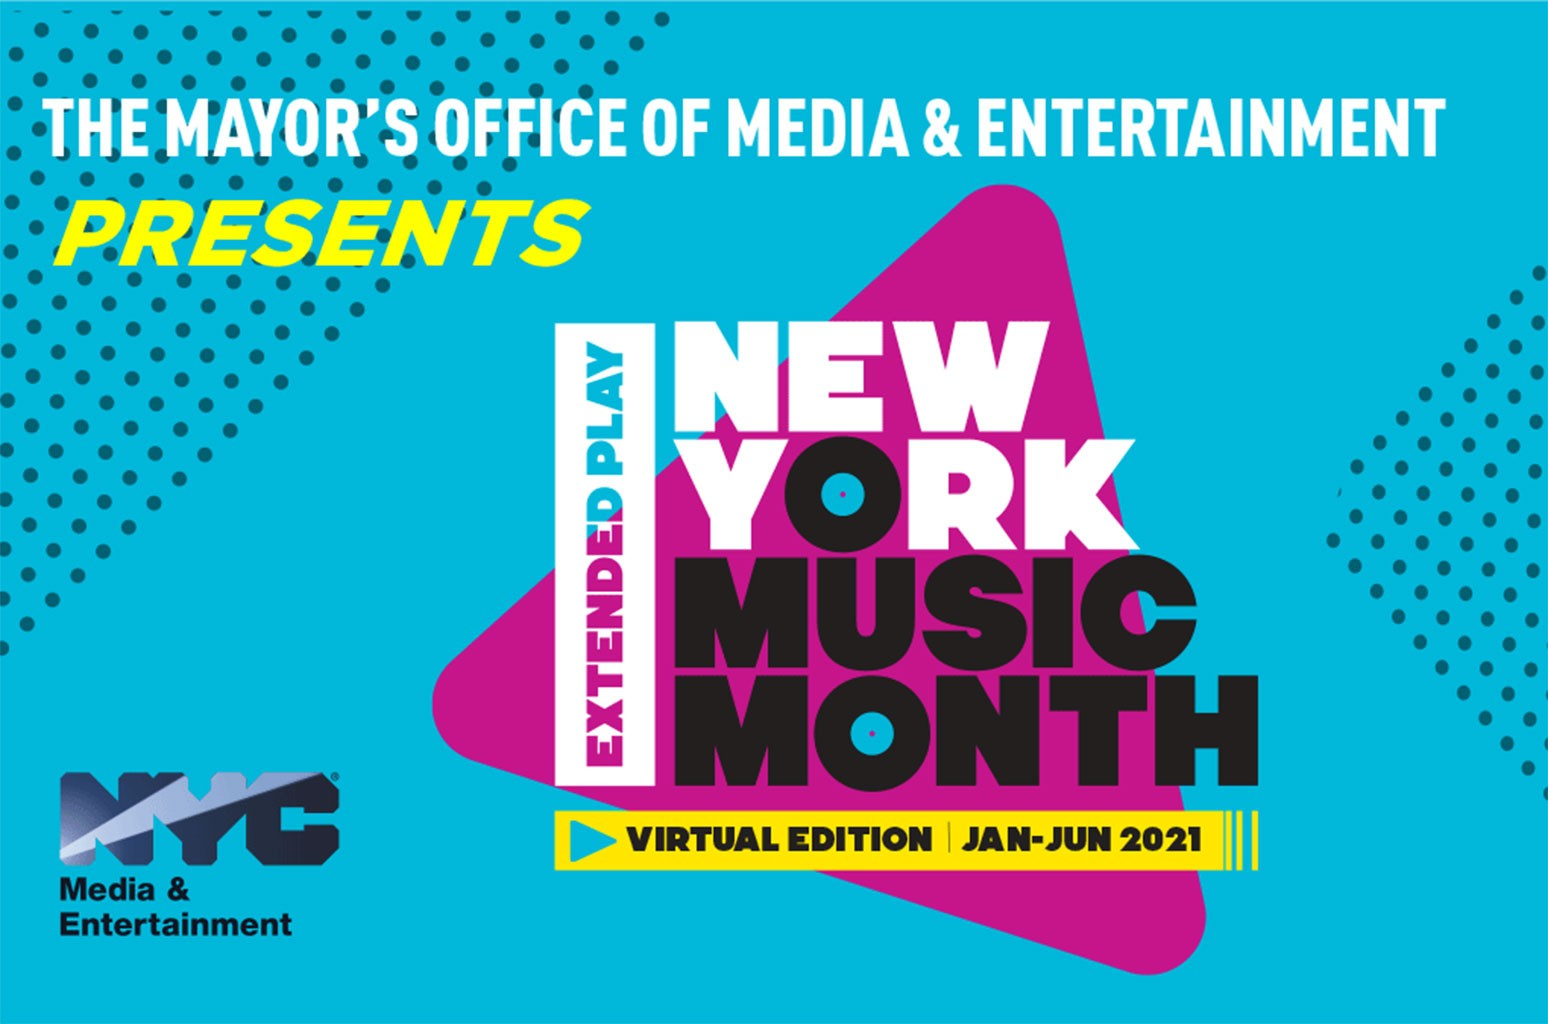 Annual New York Music Month Expands to Six Months, Starting Today: 'This is a Way to Keep the Community Alive'